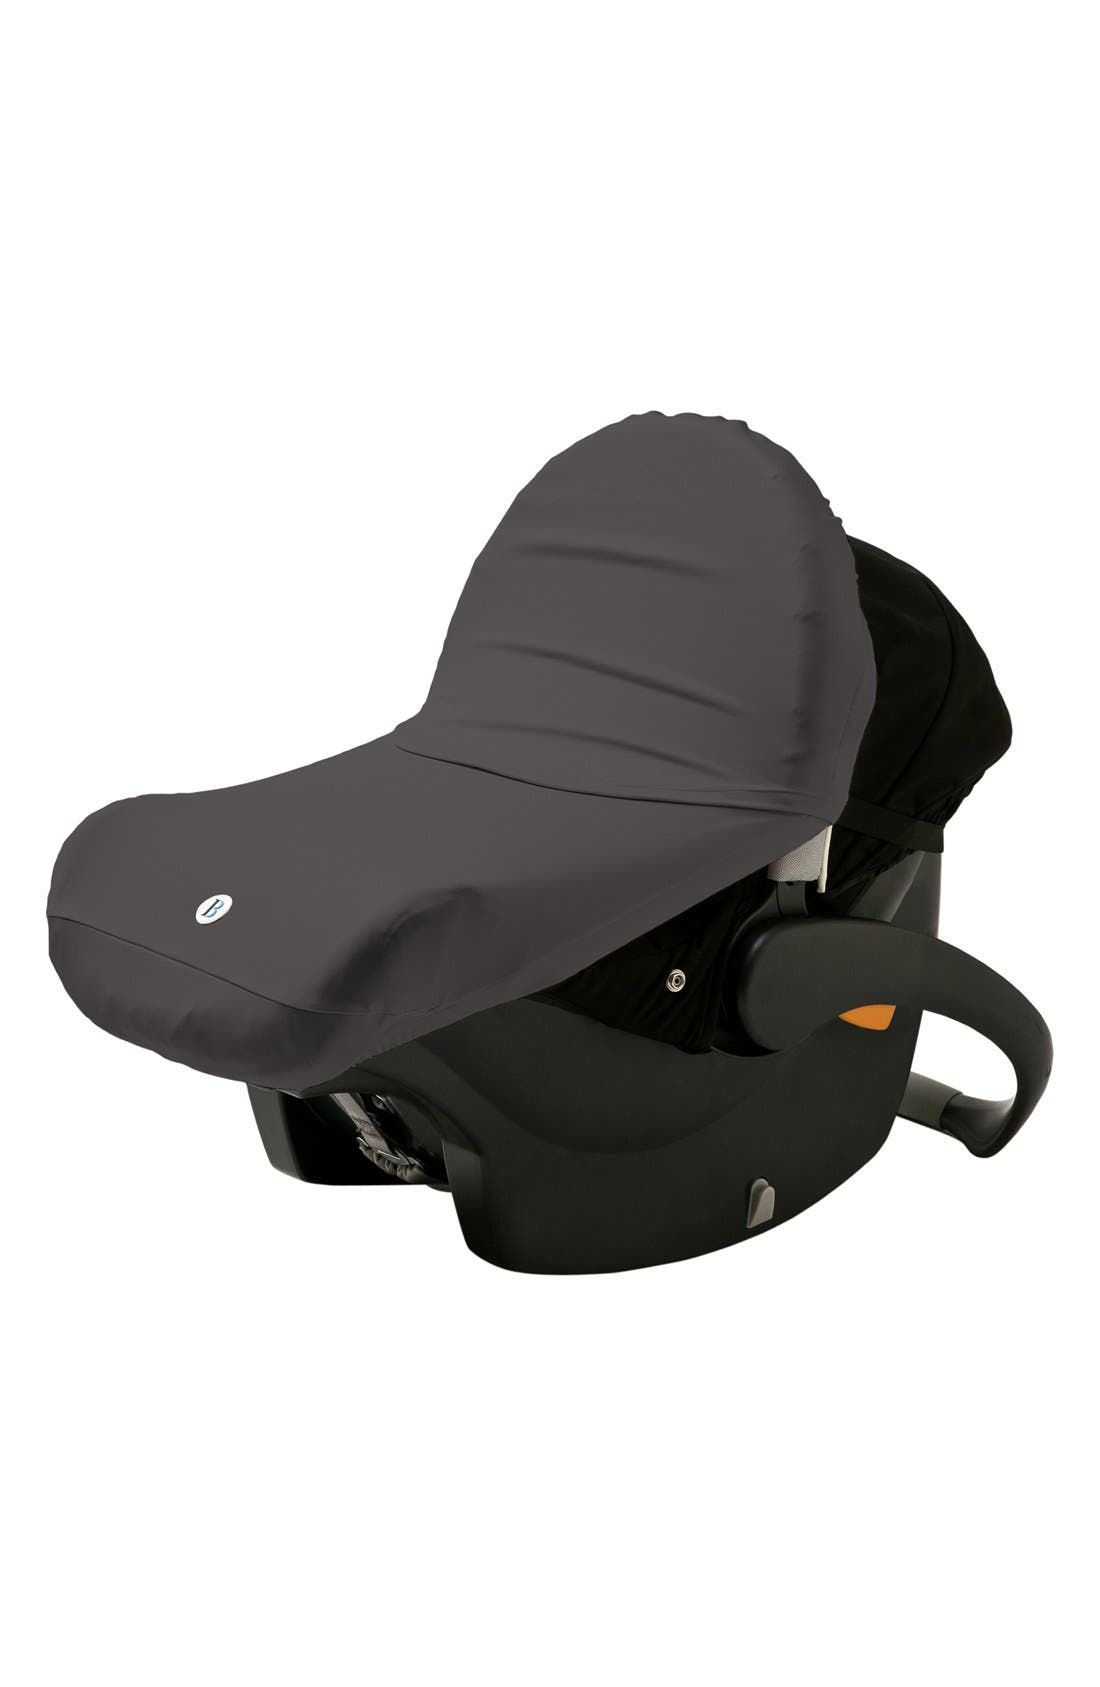 Alternate Image 1 Selected - Imagine Baby 'The Shade' Car Seat Canopy